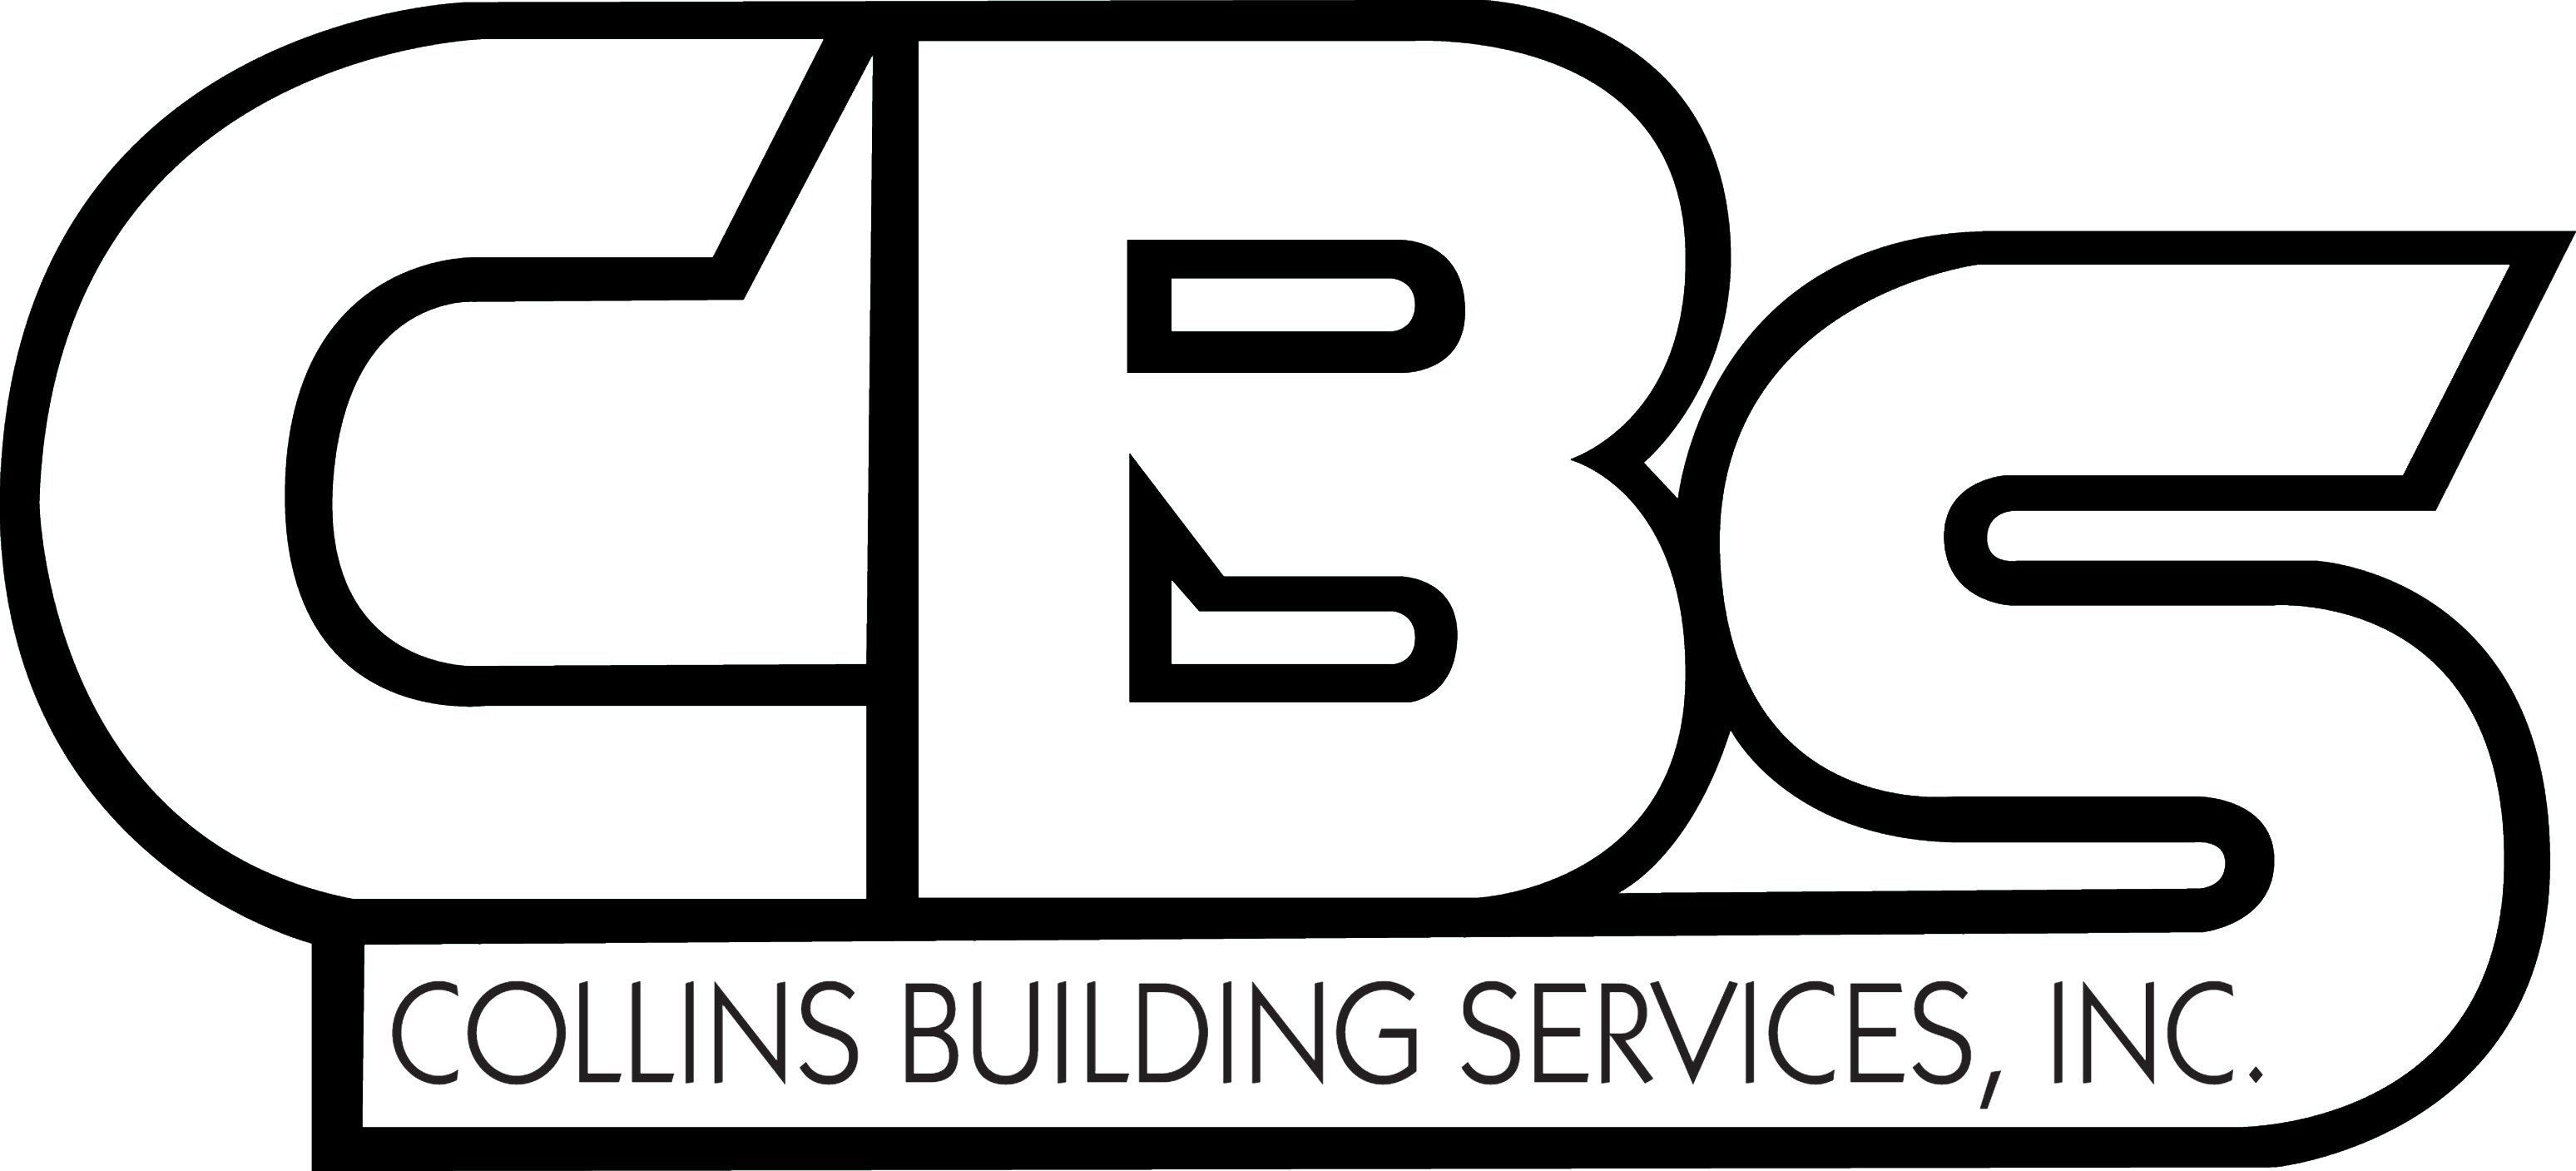 CBS Logo - CBS Logo - Black - Paypro Corporation